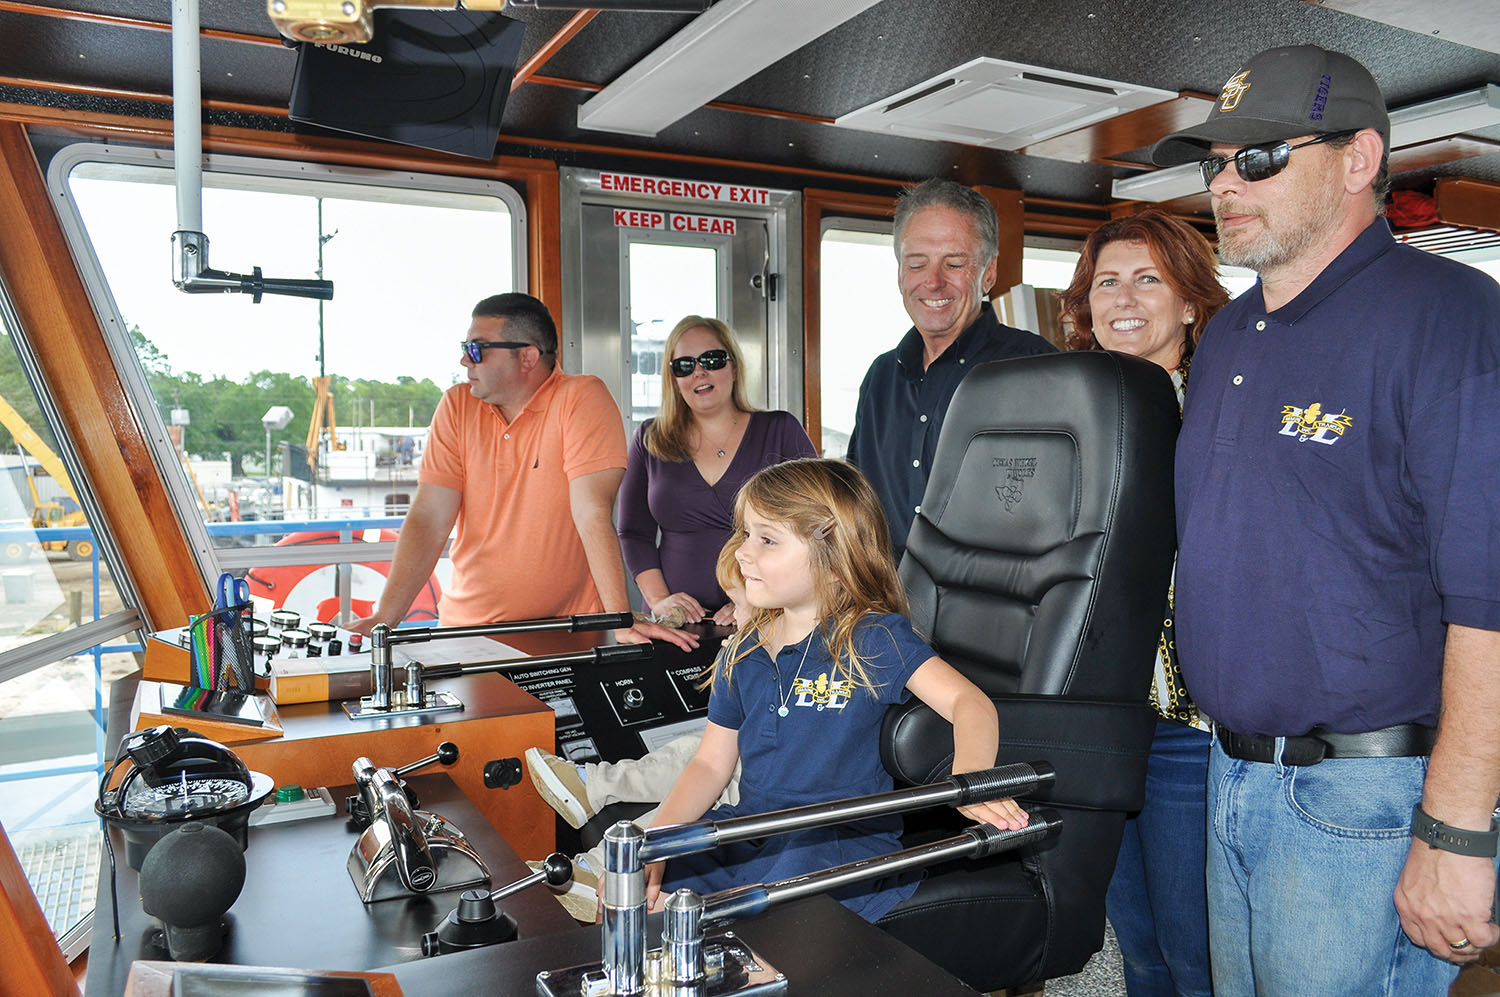 Amelia Ray Balser seated in pilot chair, surrounded by, from left: Ray and Melissa Balser, Lee and Angela LeBoeuf and Capt. Miles Shank. (Photo courtesy of L&L Marine)